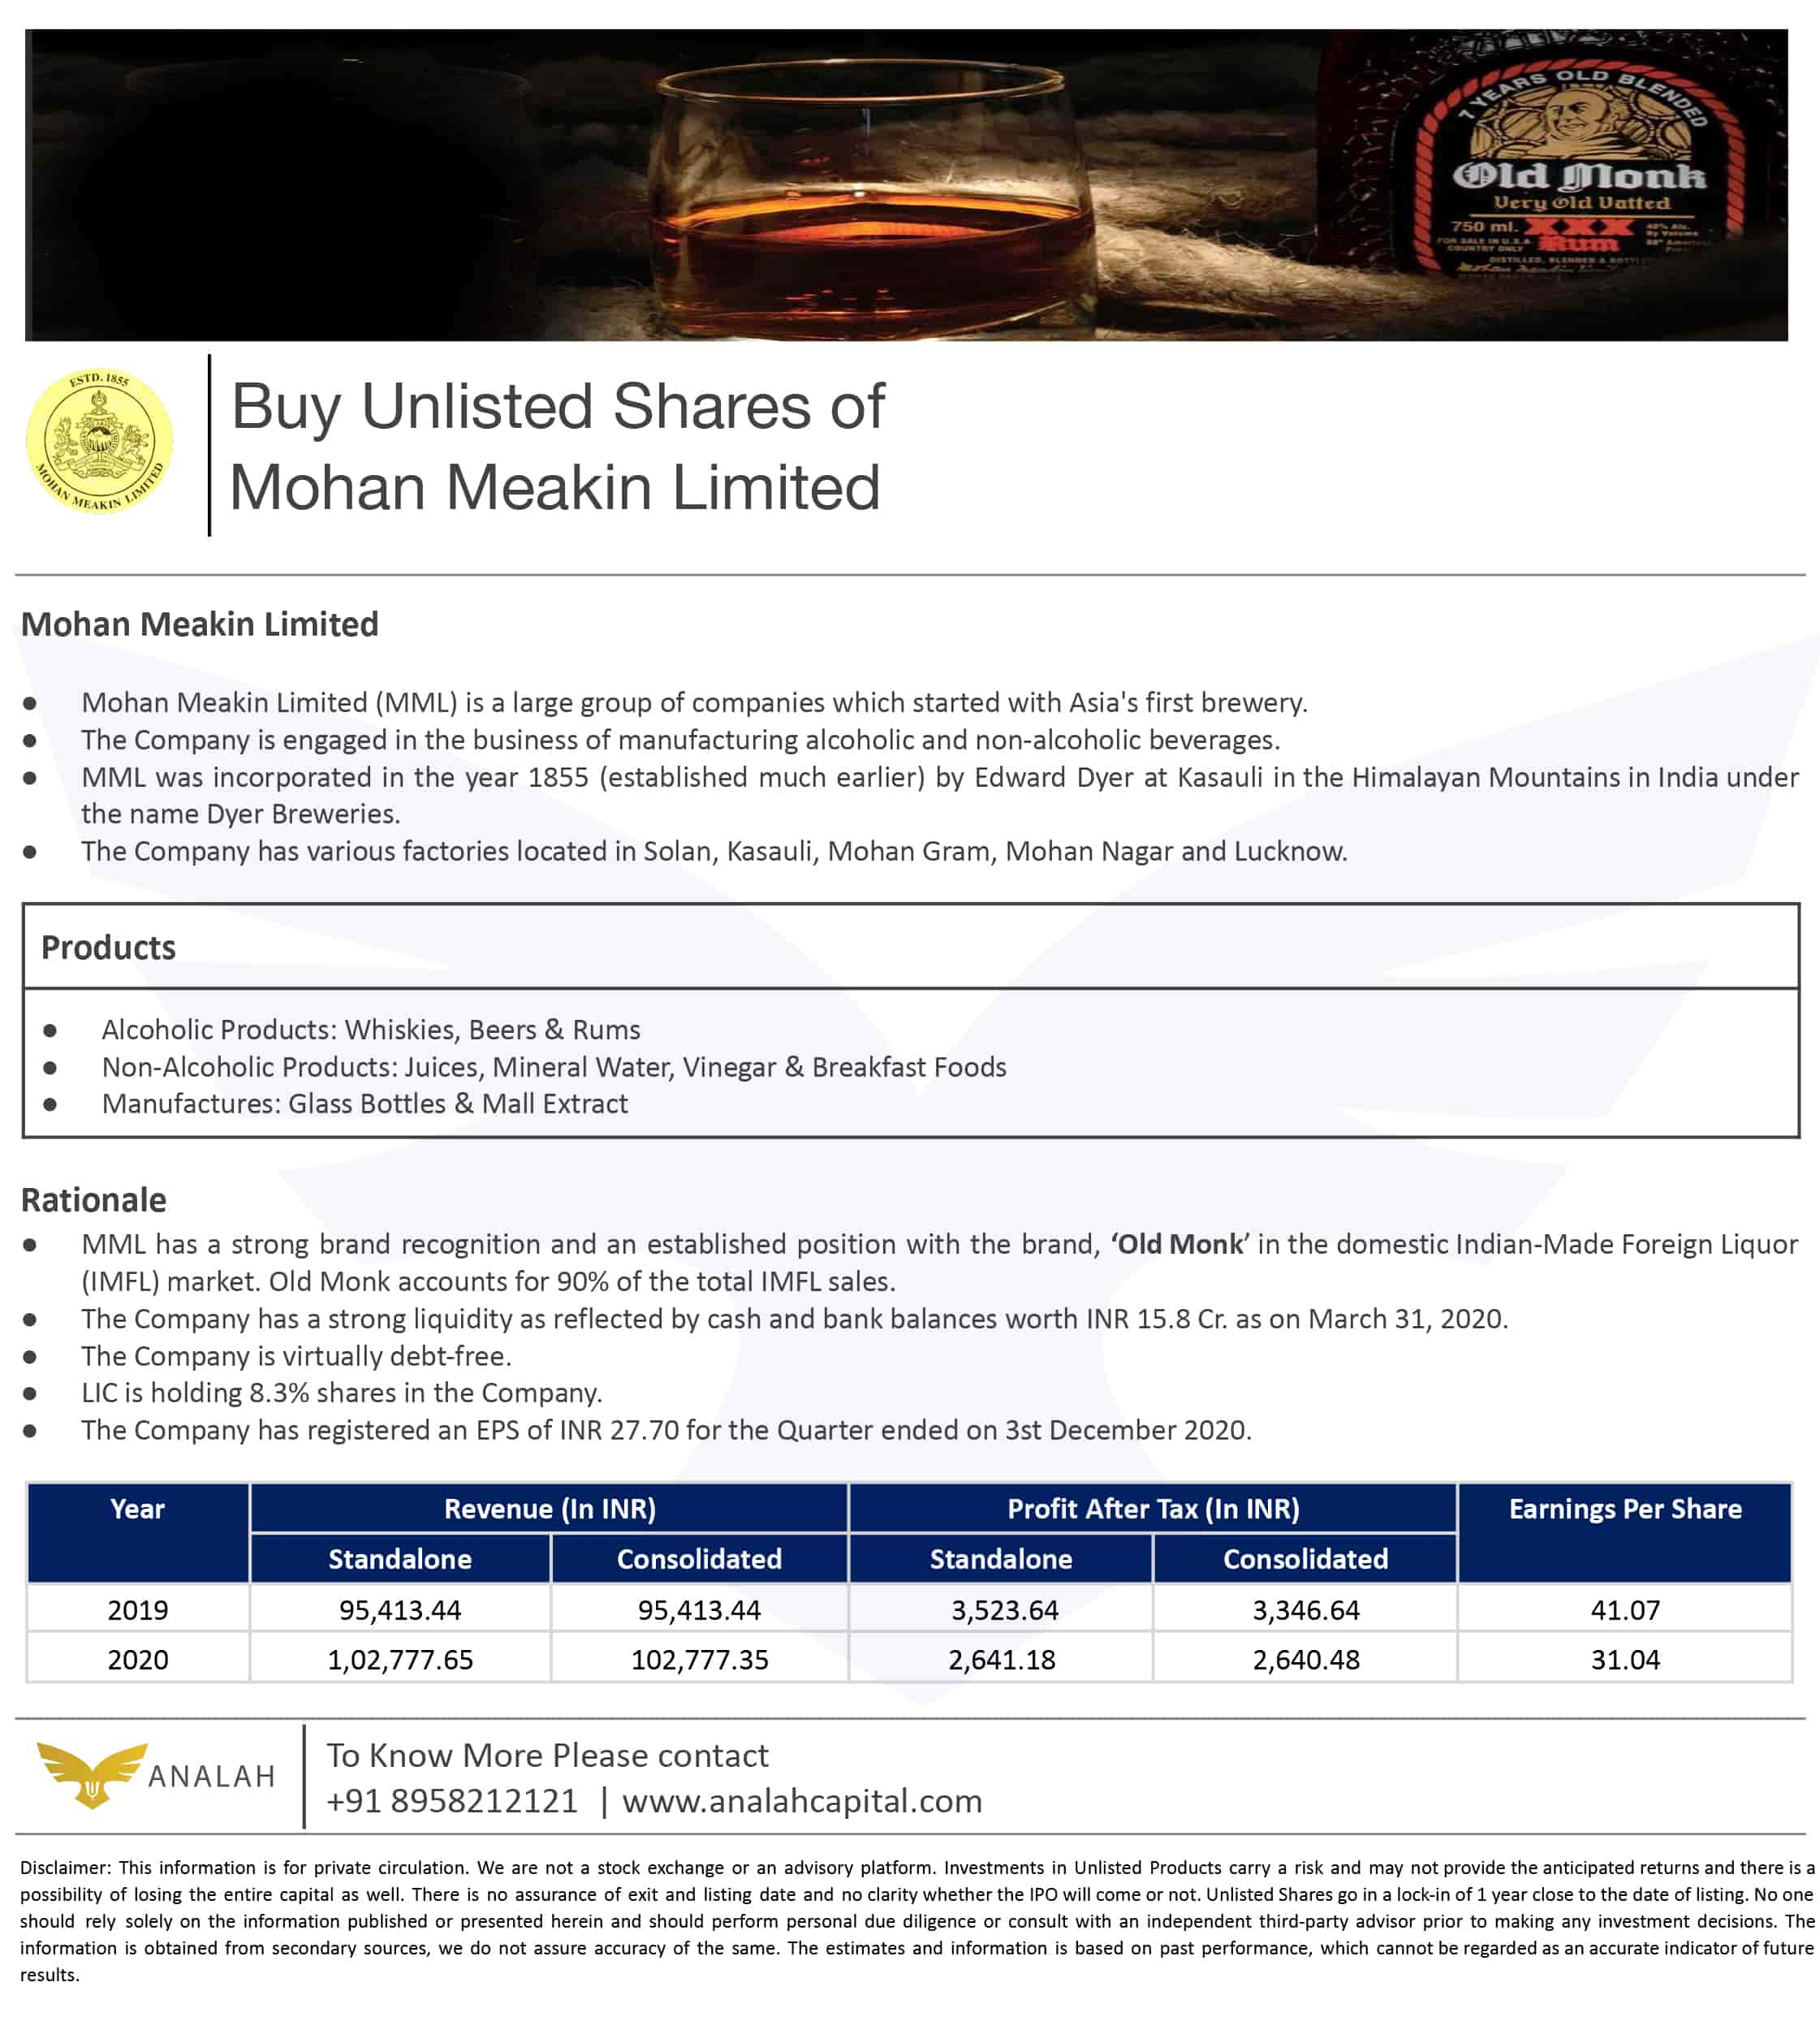 Mohan Meakin Unlisted Shares